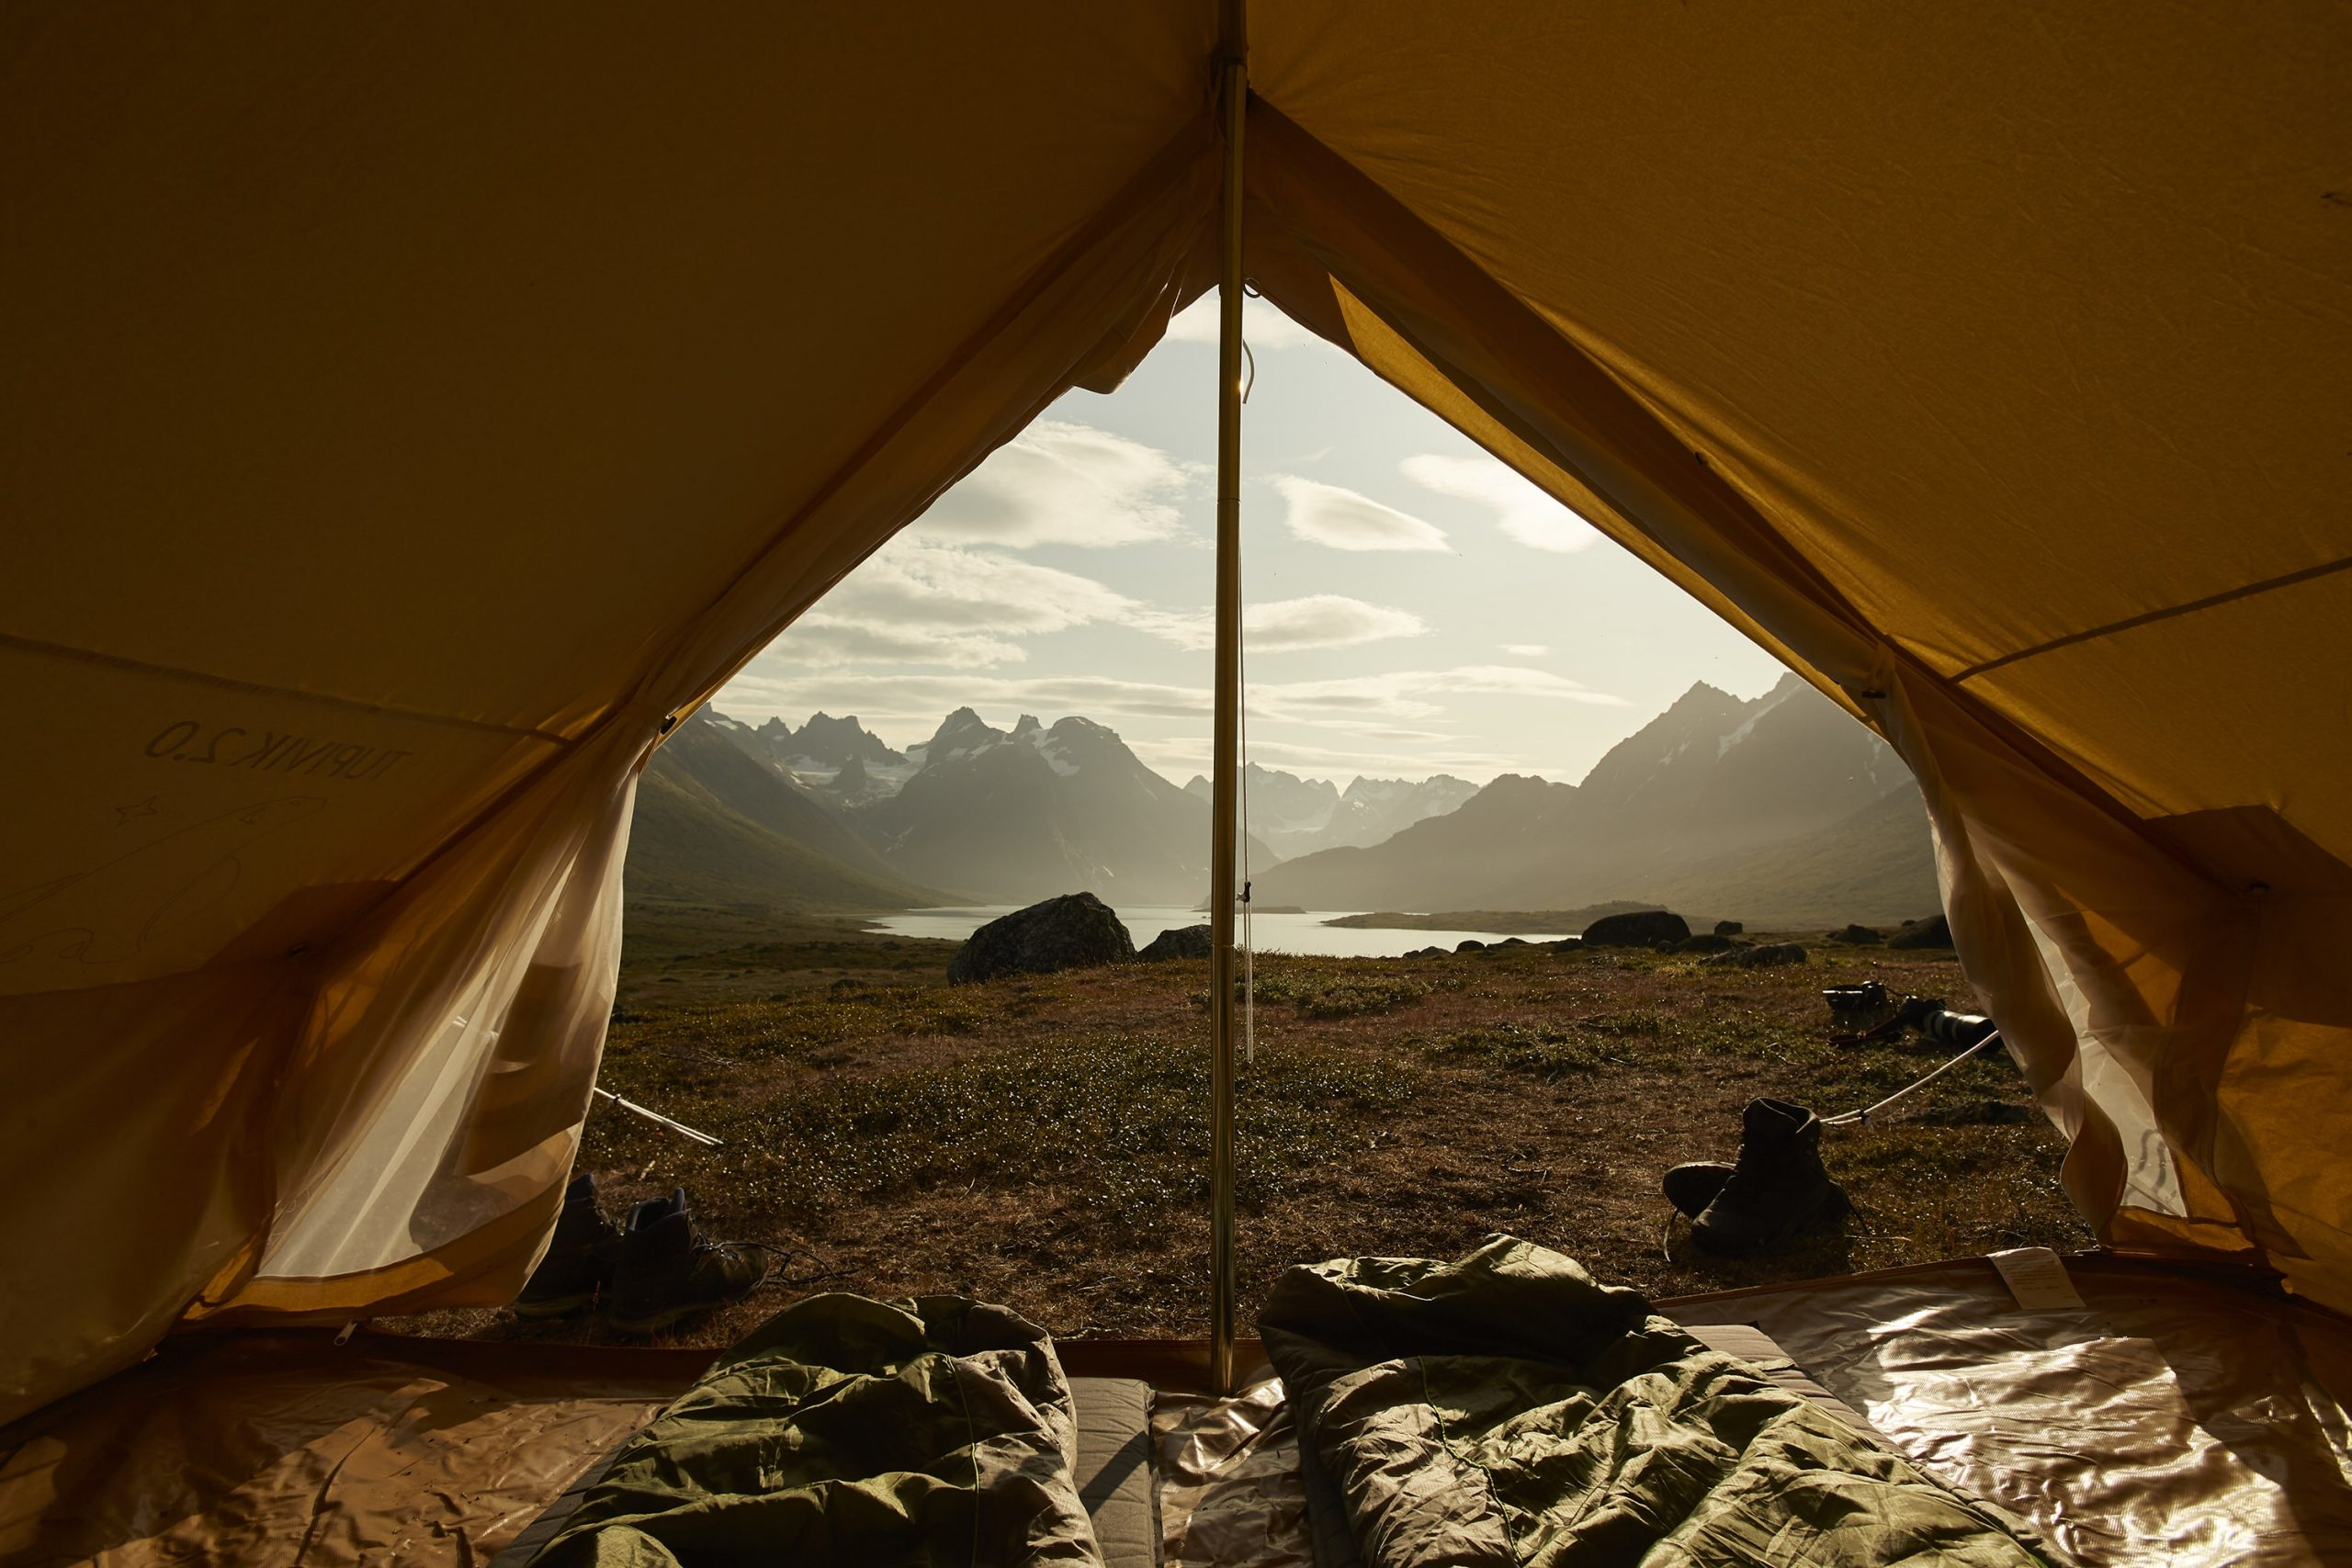 quark-expeditions_greenland-camping-experience_photographer-peterlindstrom-visitgreenlandr6a6897_credit_peterlindstrom-1-min